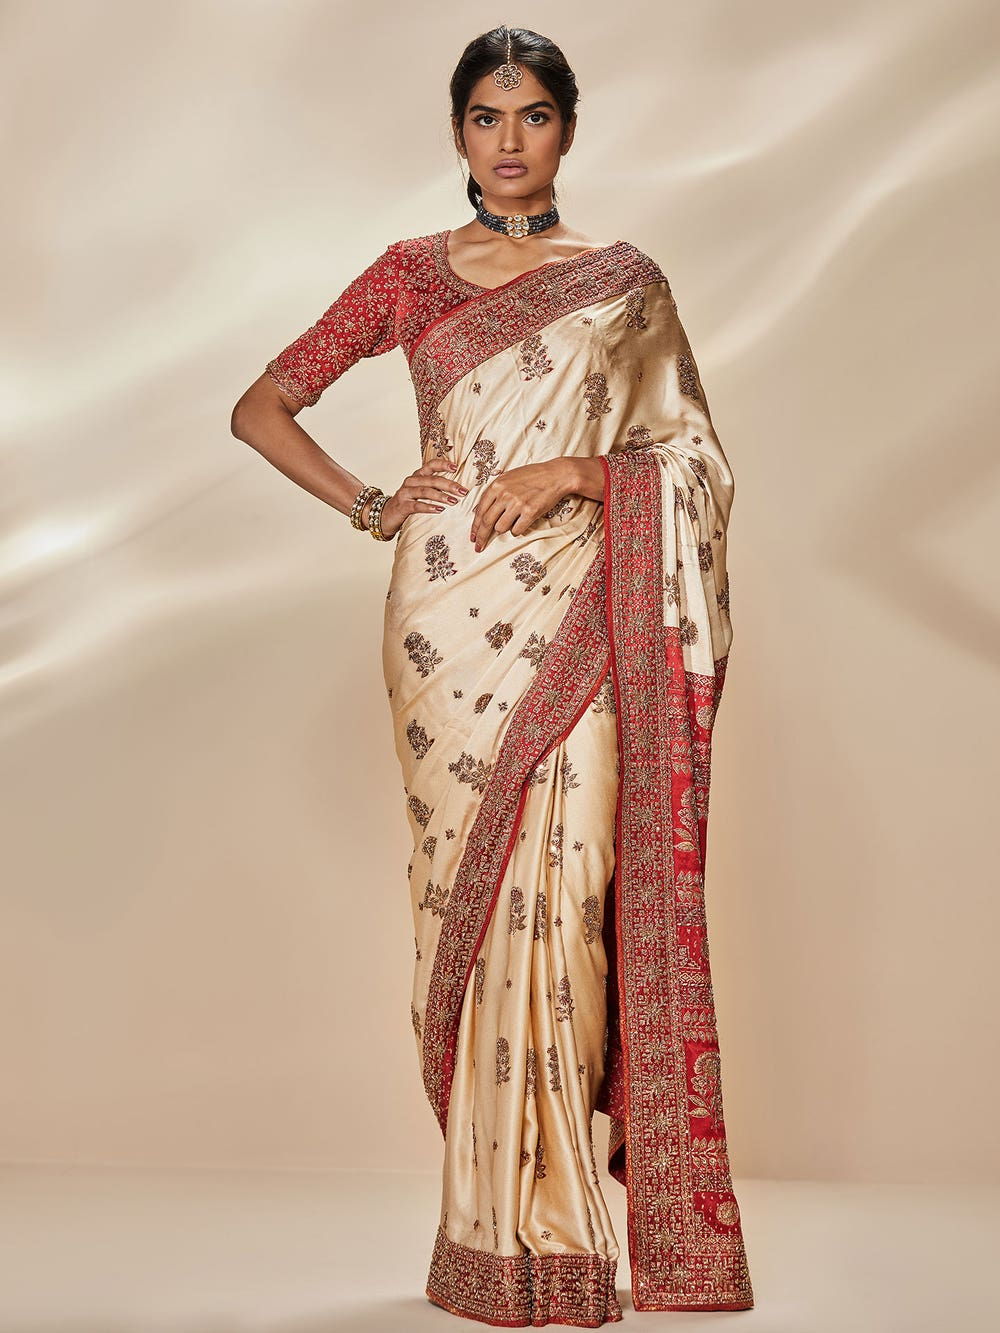 Off White & Red Nabha Zardozi Hand Embroidered Saree With Unstitched Blouse